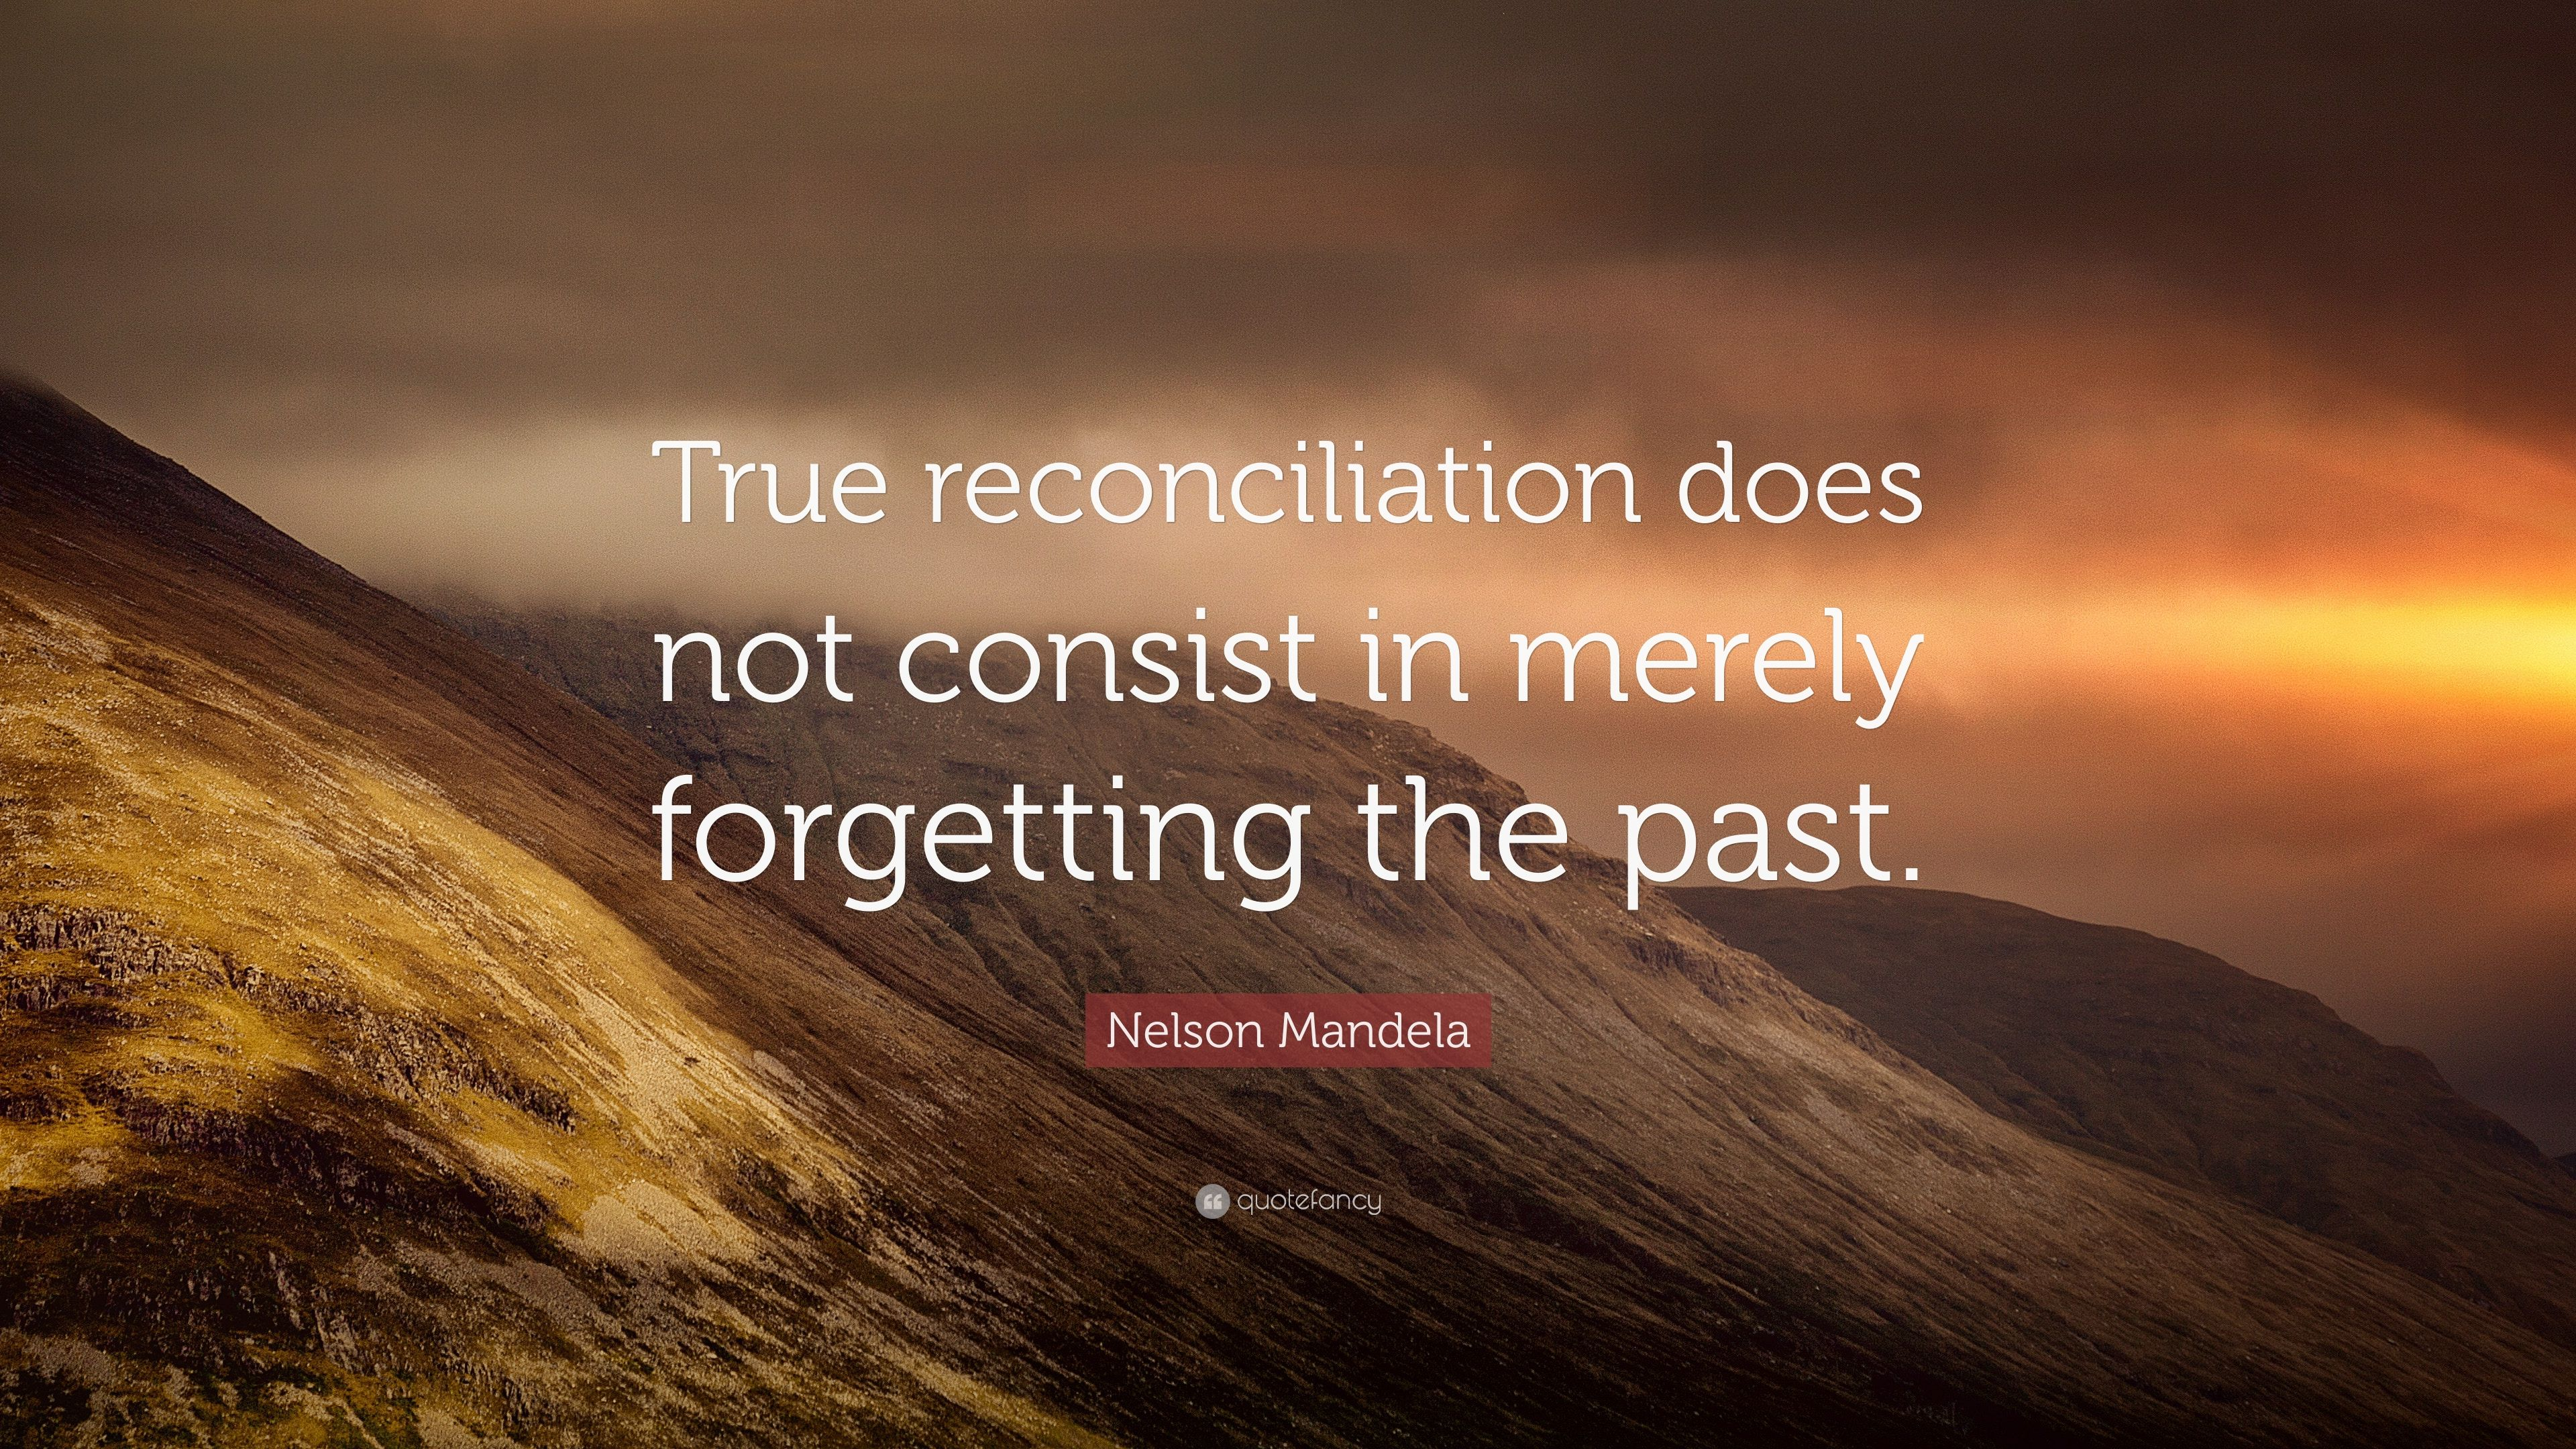 Nelson Mandela Quote True Reconciliation Does Not Consist In